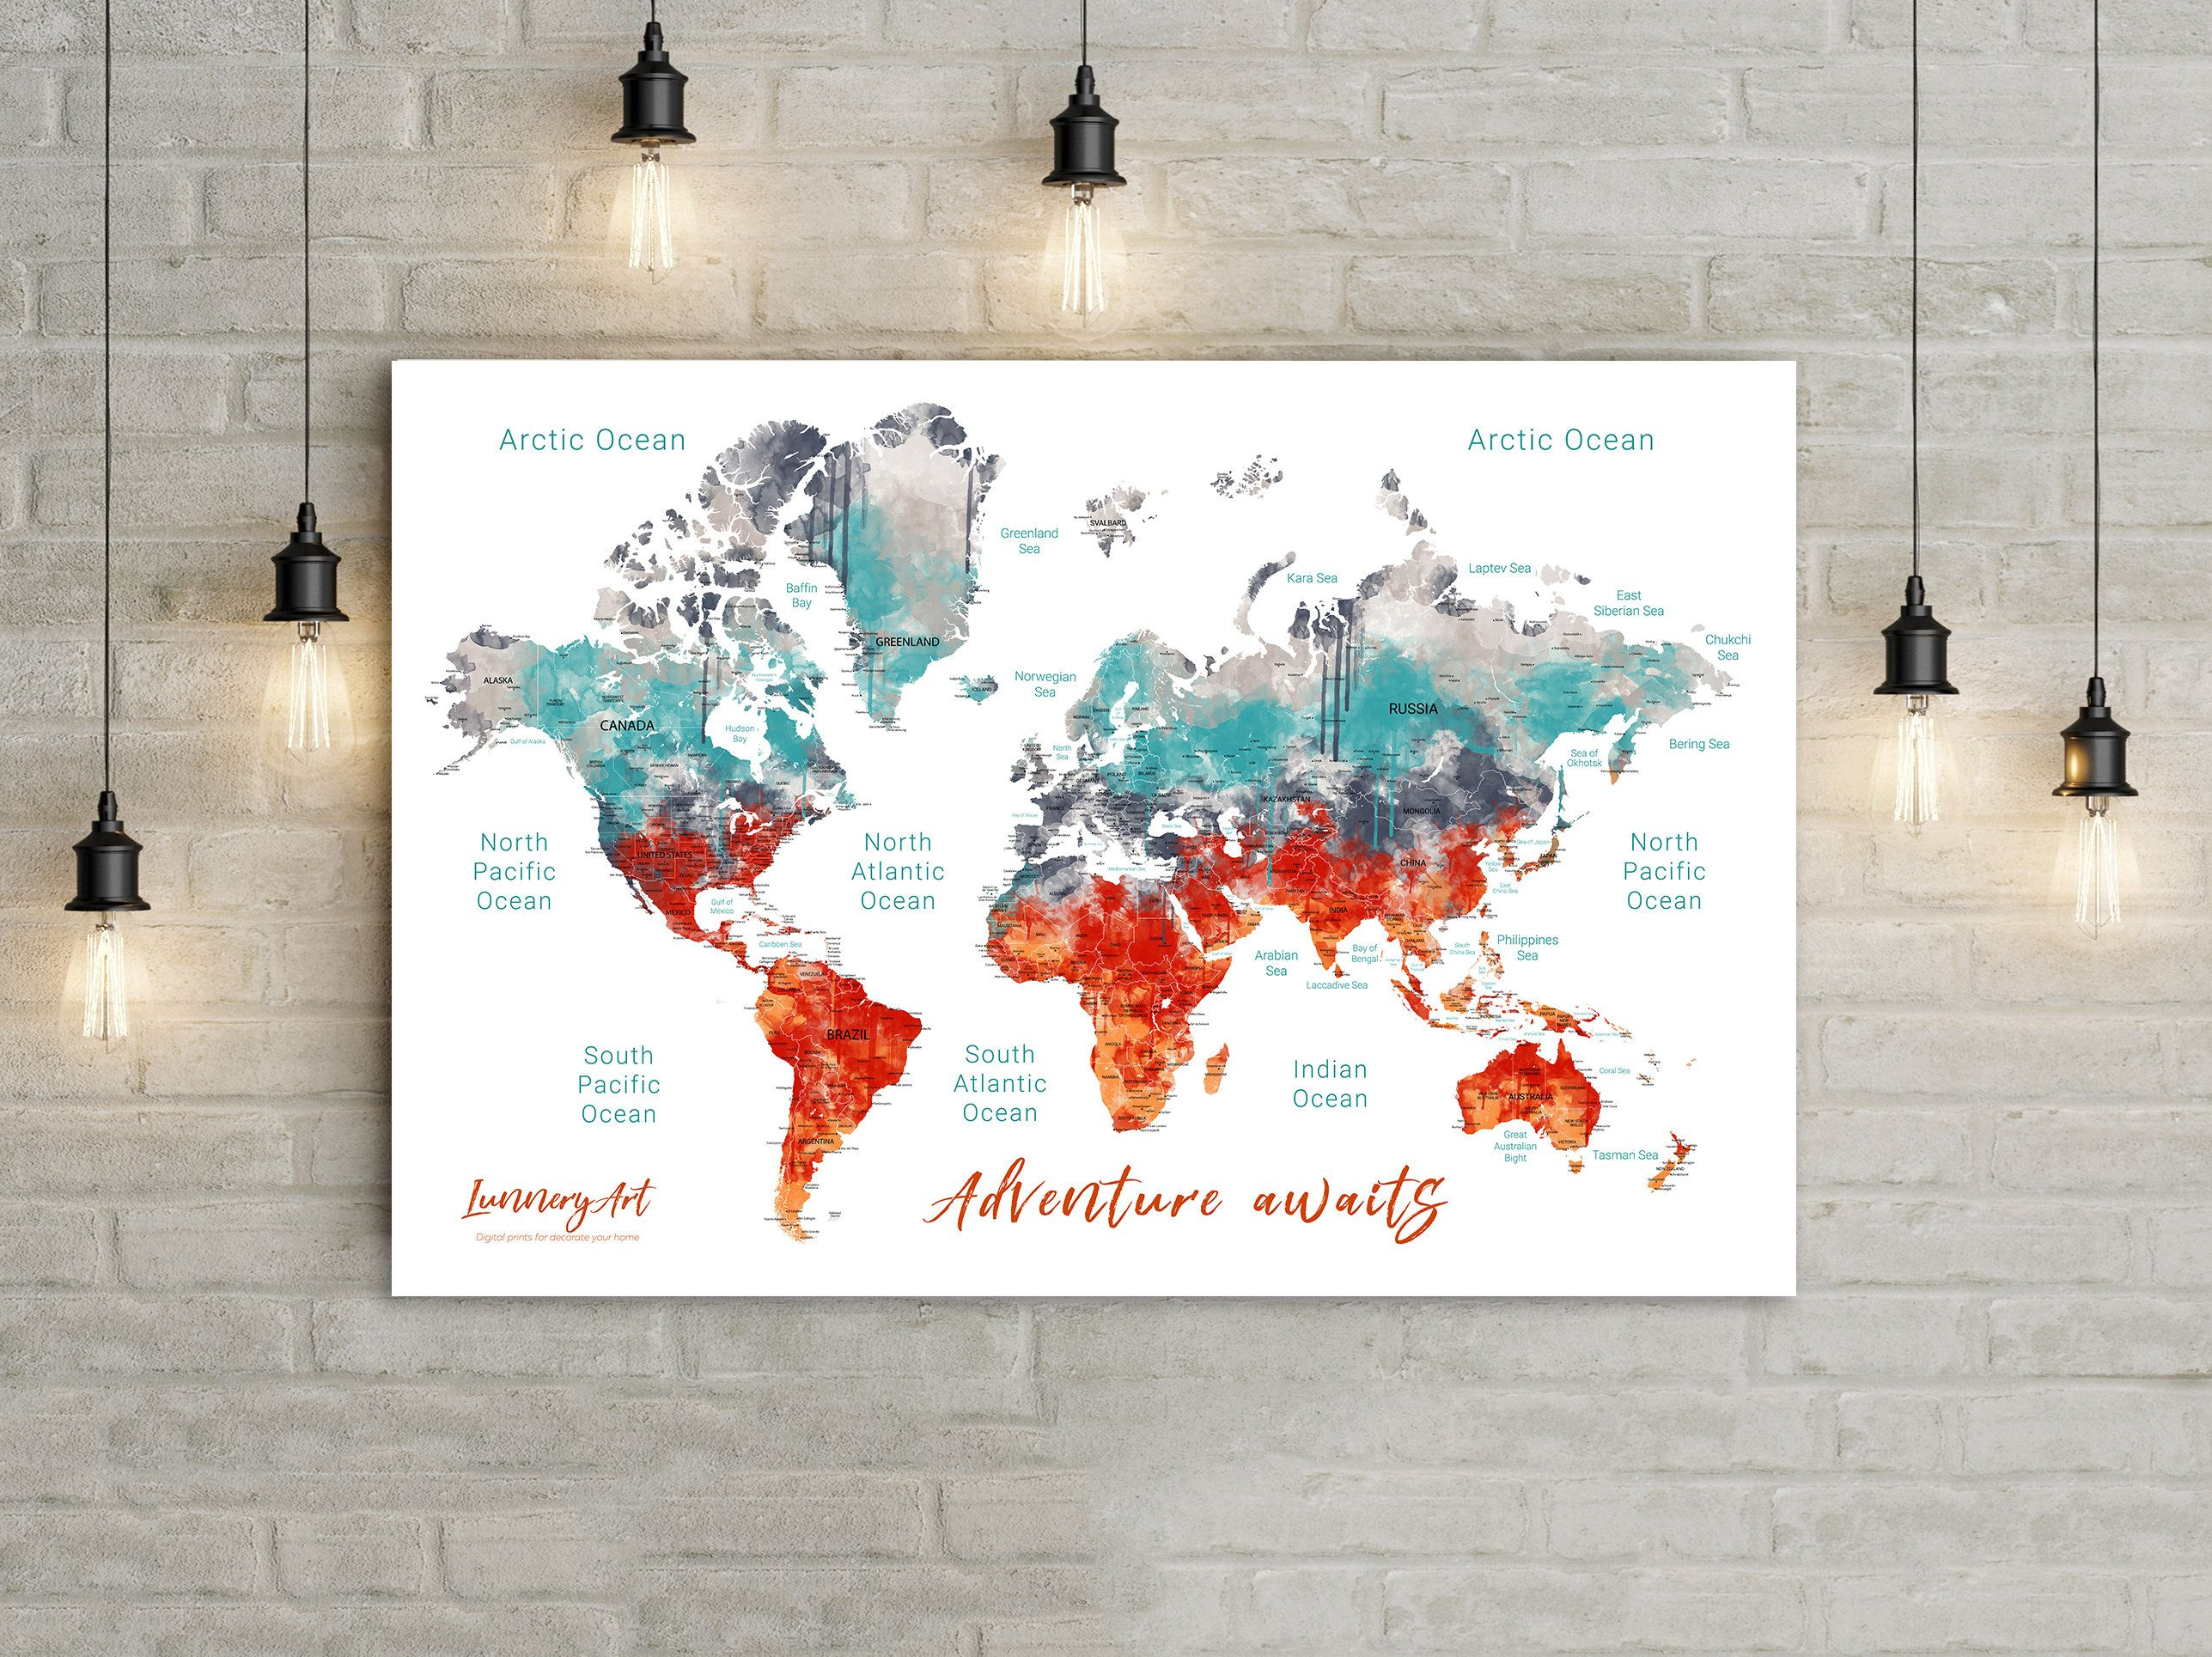 World map printable custom map digital files printable world map world map printable custom map digital files printable world map file for printing a push pin map watercolor map large wall art gumiabroncs Gallery